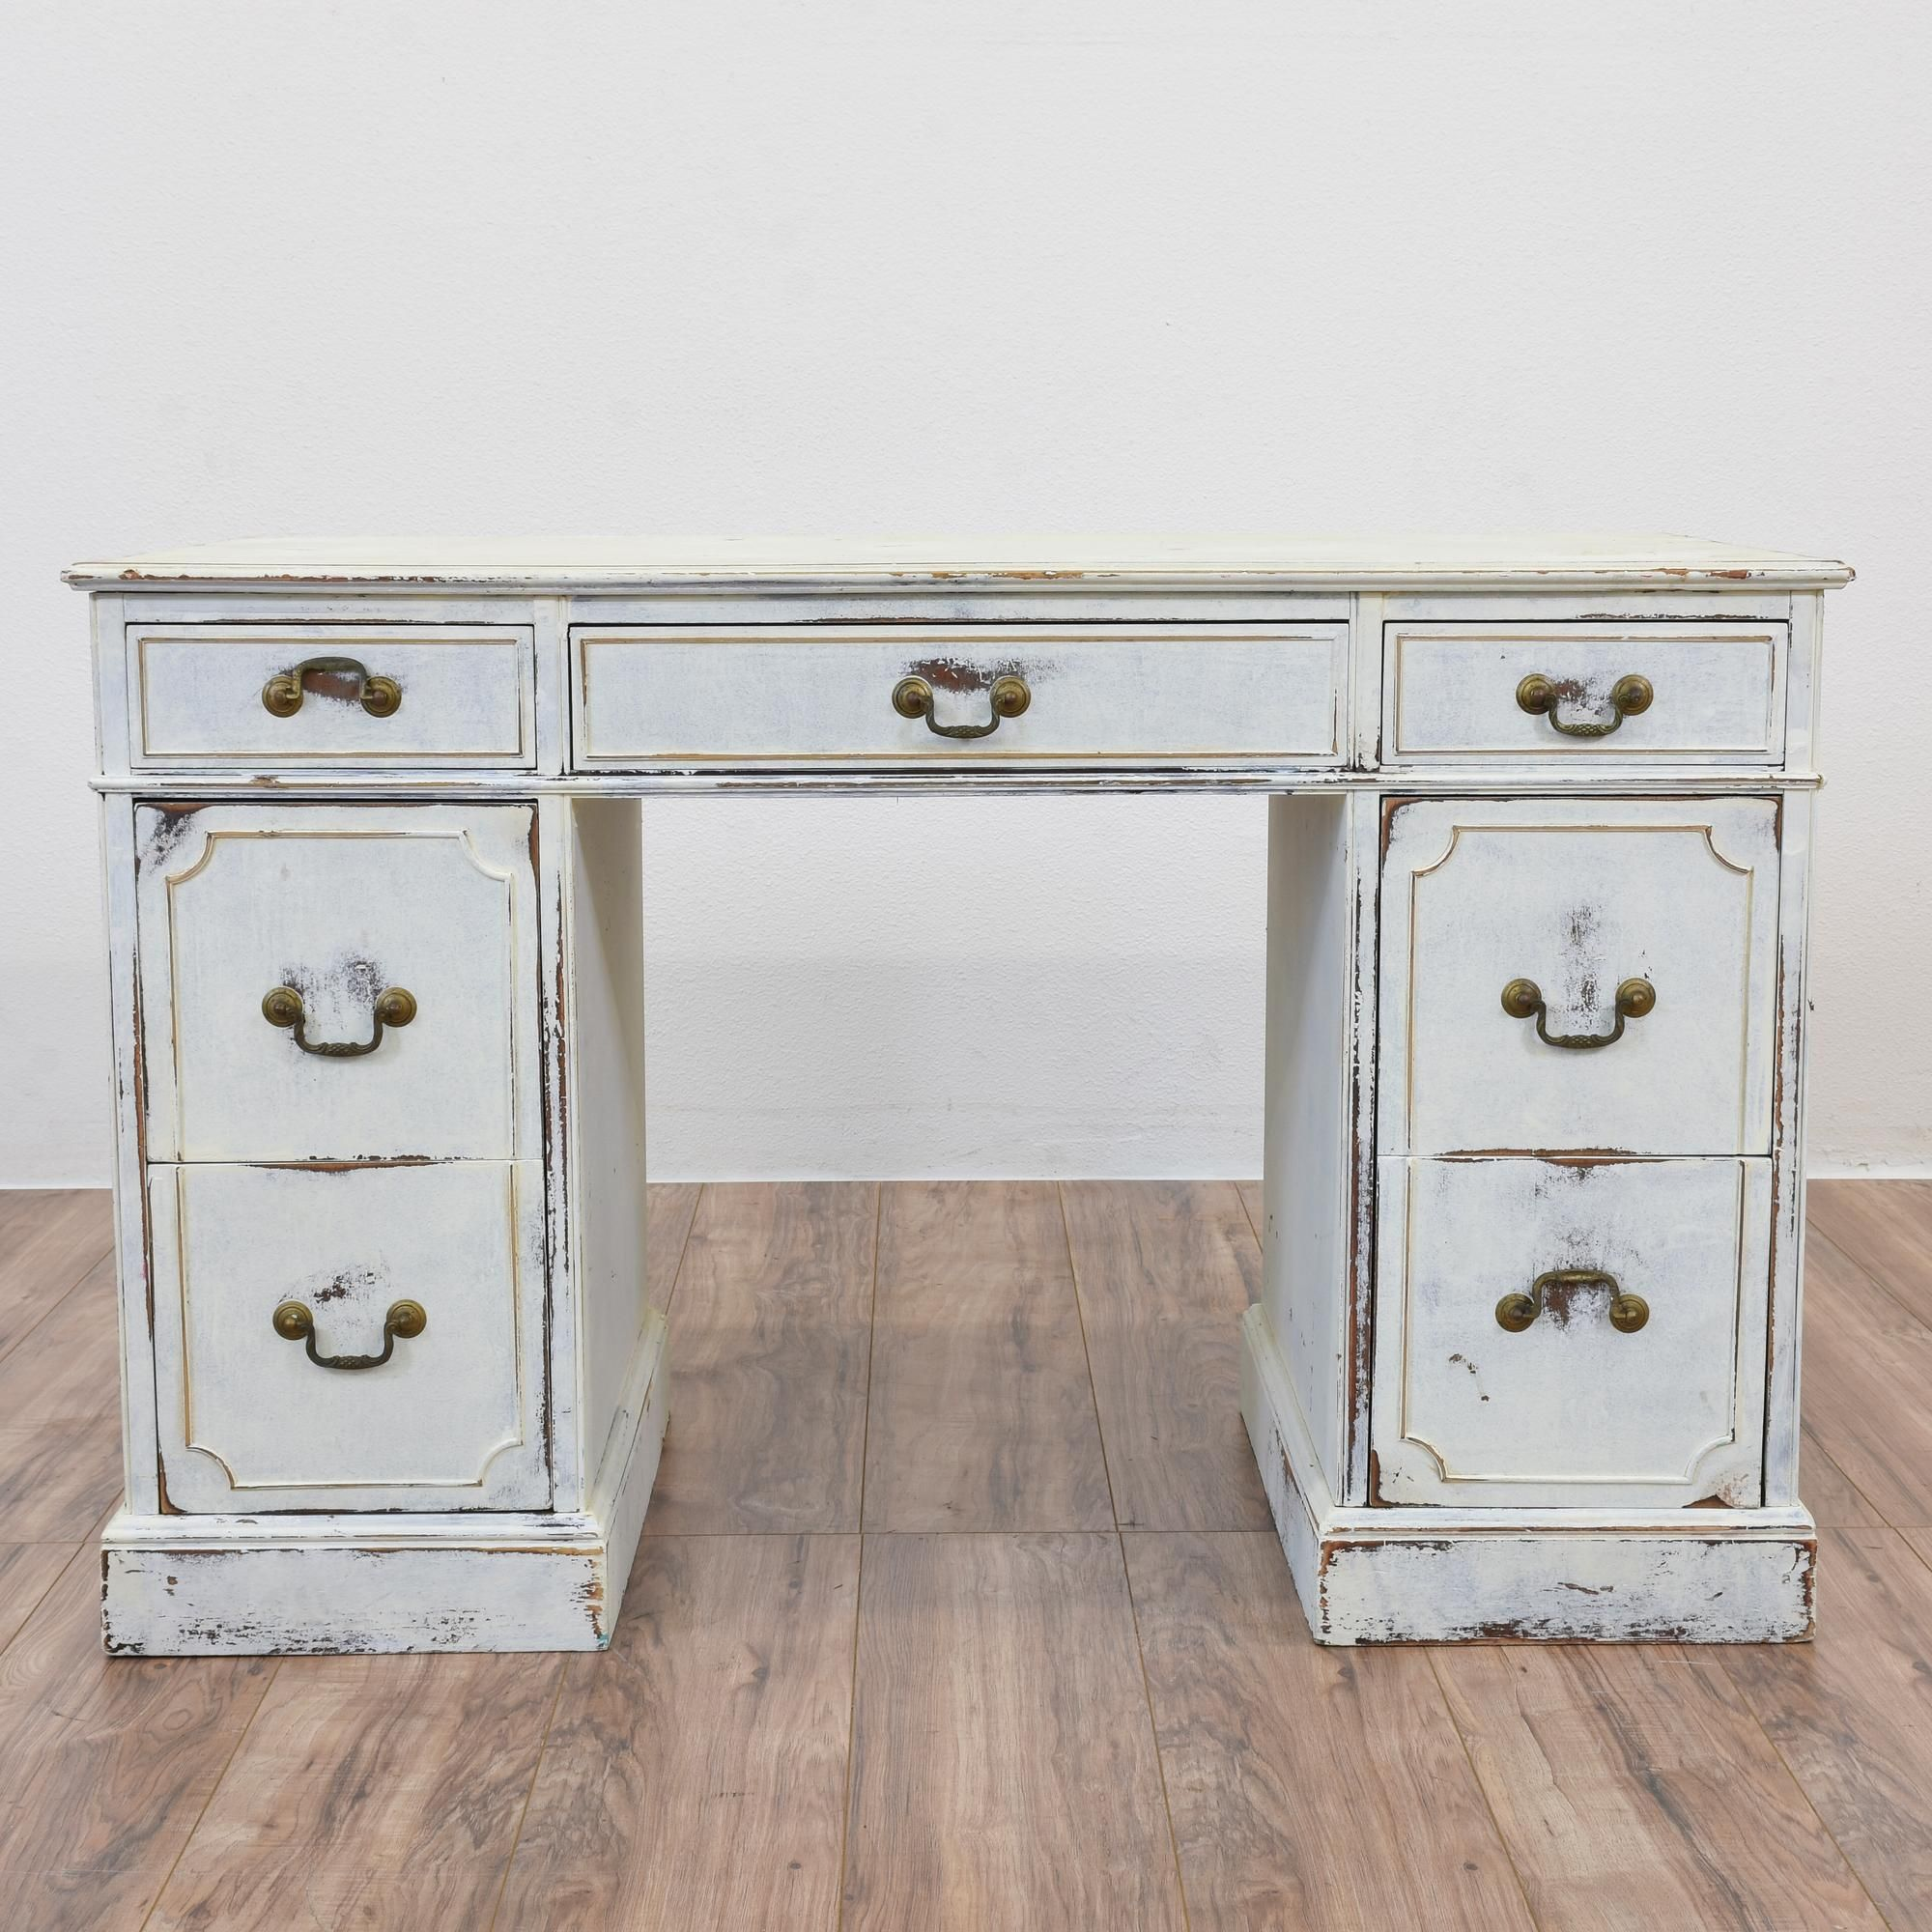 incredible shaped office desk chairandsofaclub. White Gray Solid Wood Office. This Shabby Chic Kneehole Desk Is Featured In A Incredible Shaped Office Chairandsofaclub S